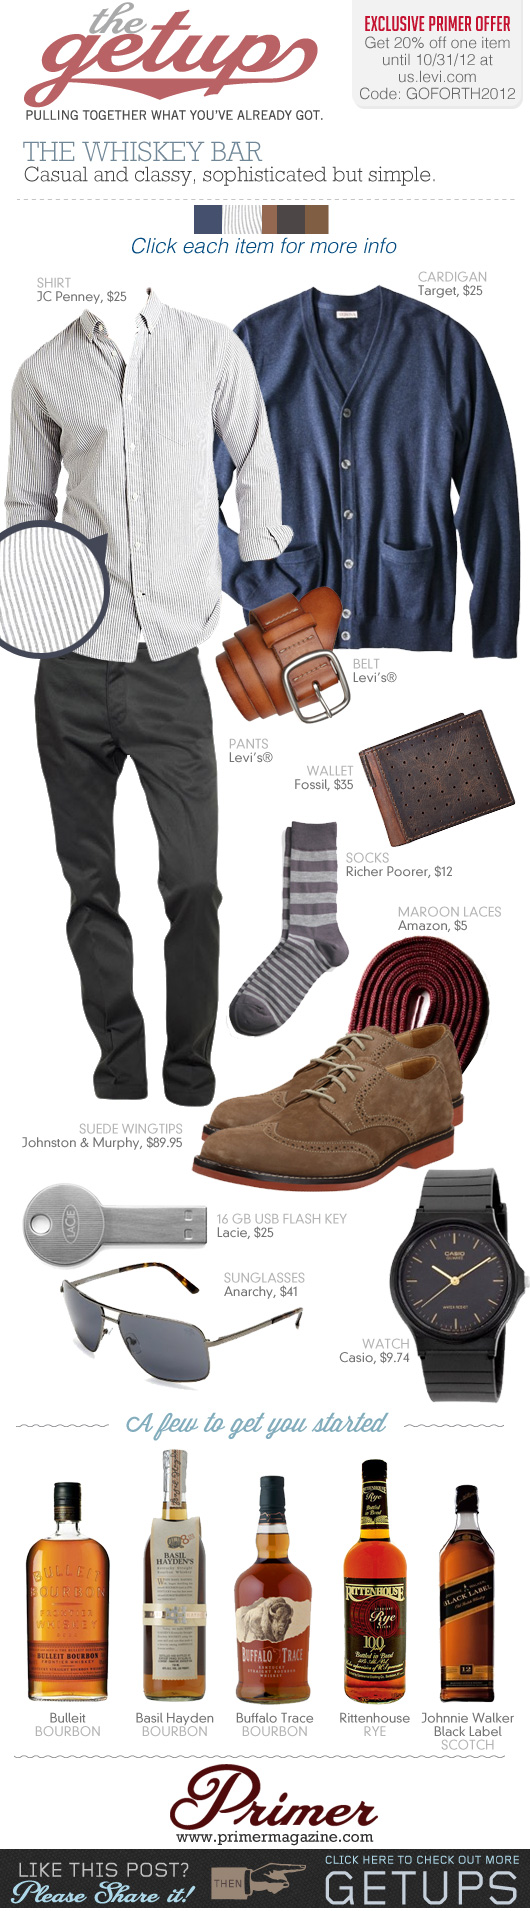 The Getup: What to wear to a whiskey bar outfit inspiration - blue sweater, striped shirt, gray pants, tan wingtips